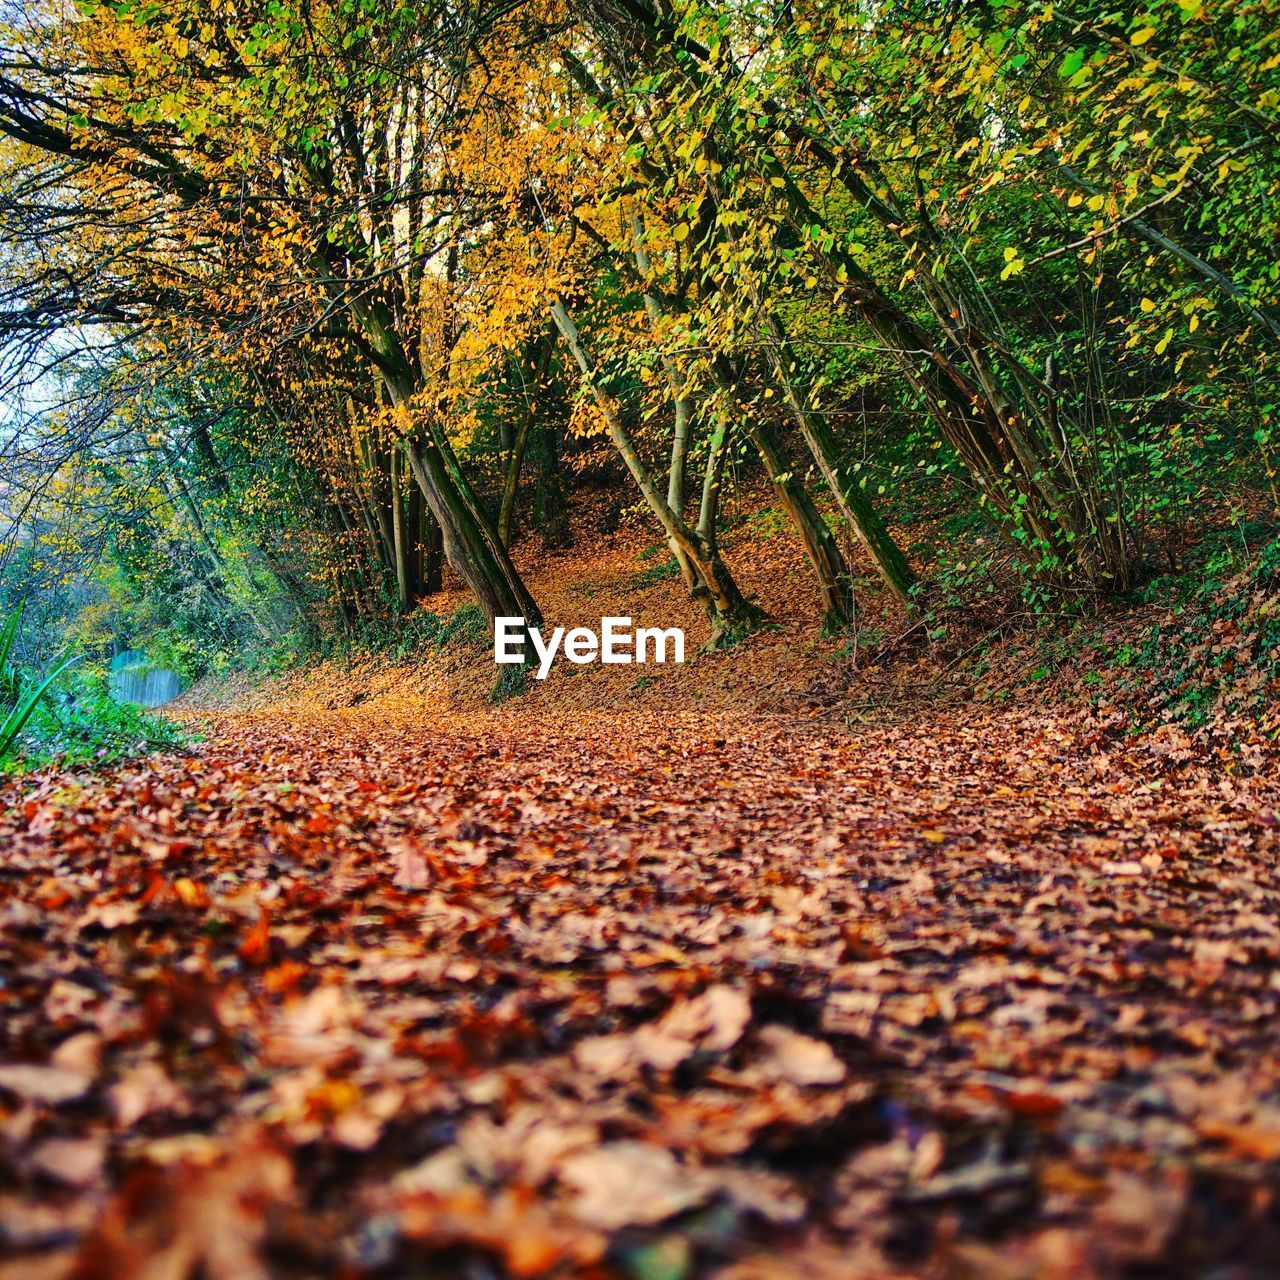 tree, autumn, plant, plant part, leaf, land, nature, day, change, forest, beauty in nature, falling, growth, tranquility, footpath, tranquil scene, selective focus, no people, non-urban scene, the way forward, outdoors, leaves, surface level, fall, autumn collection